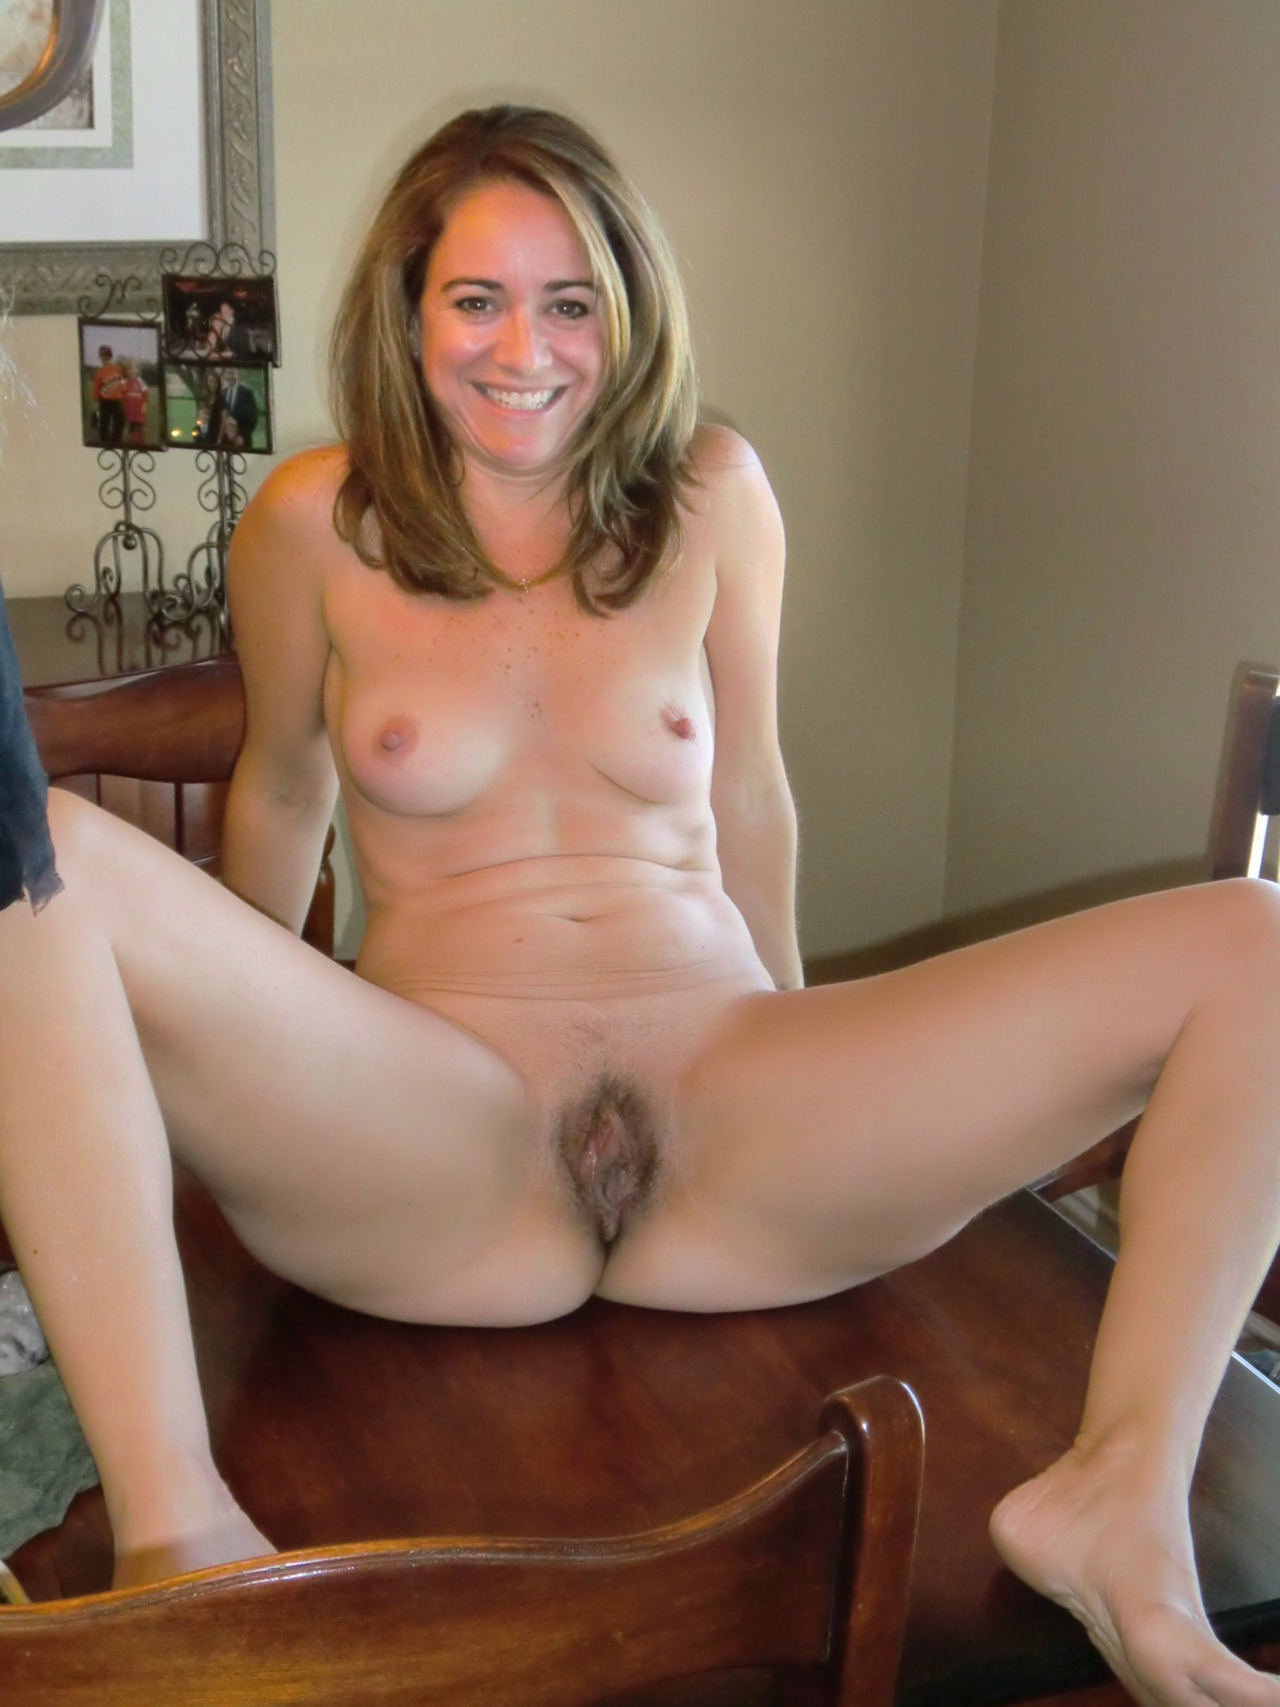 Amateur 40yr old native american indian mom 1st video 4